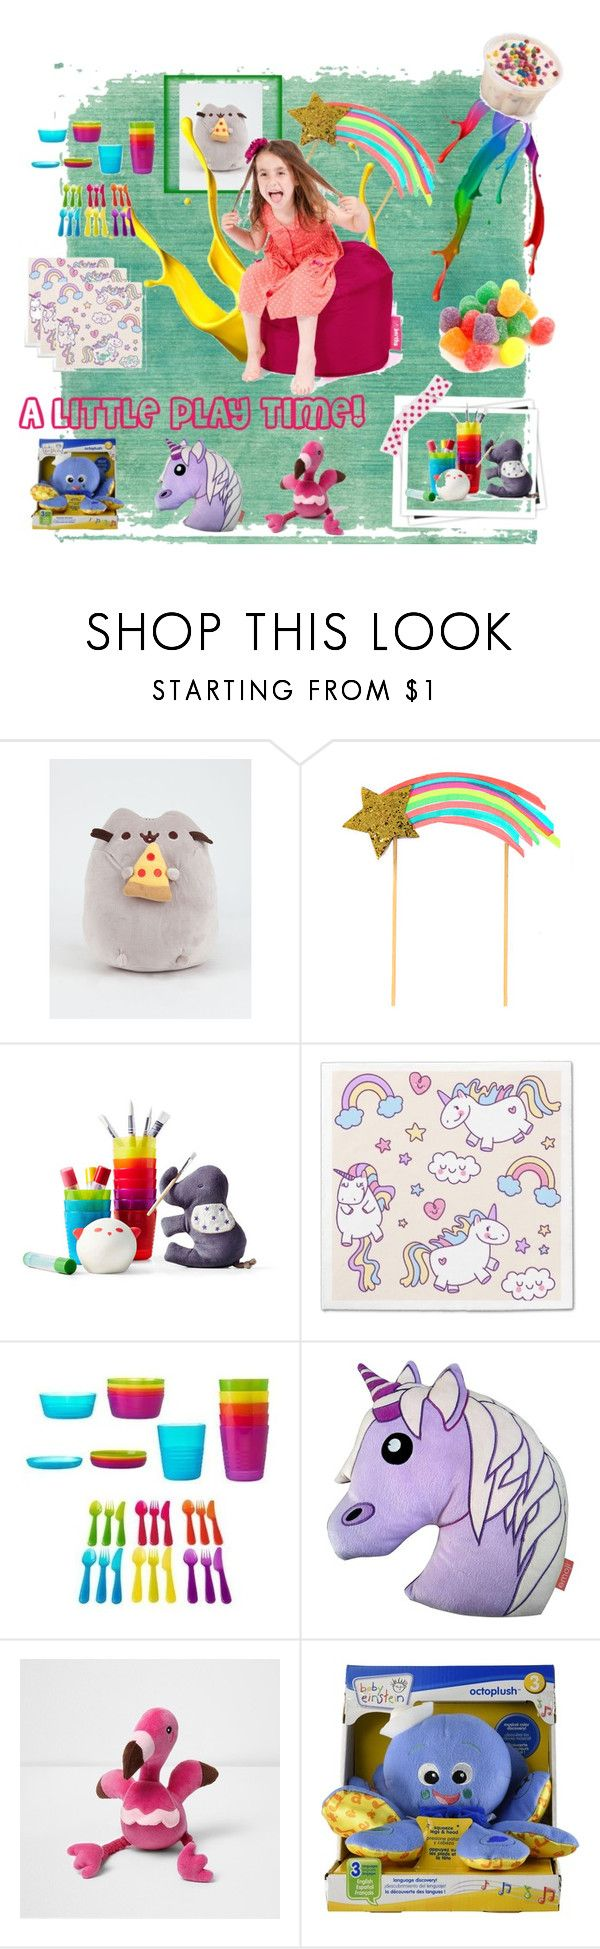 Playroom inspo in time for the spring bank holiday